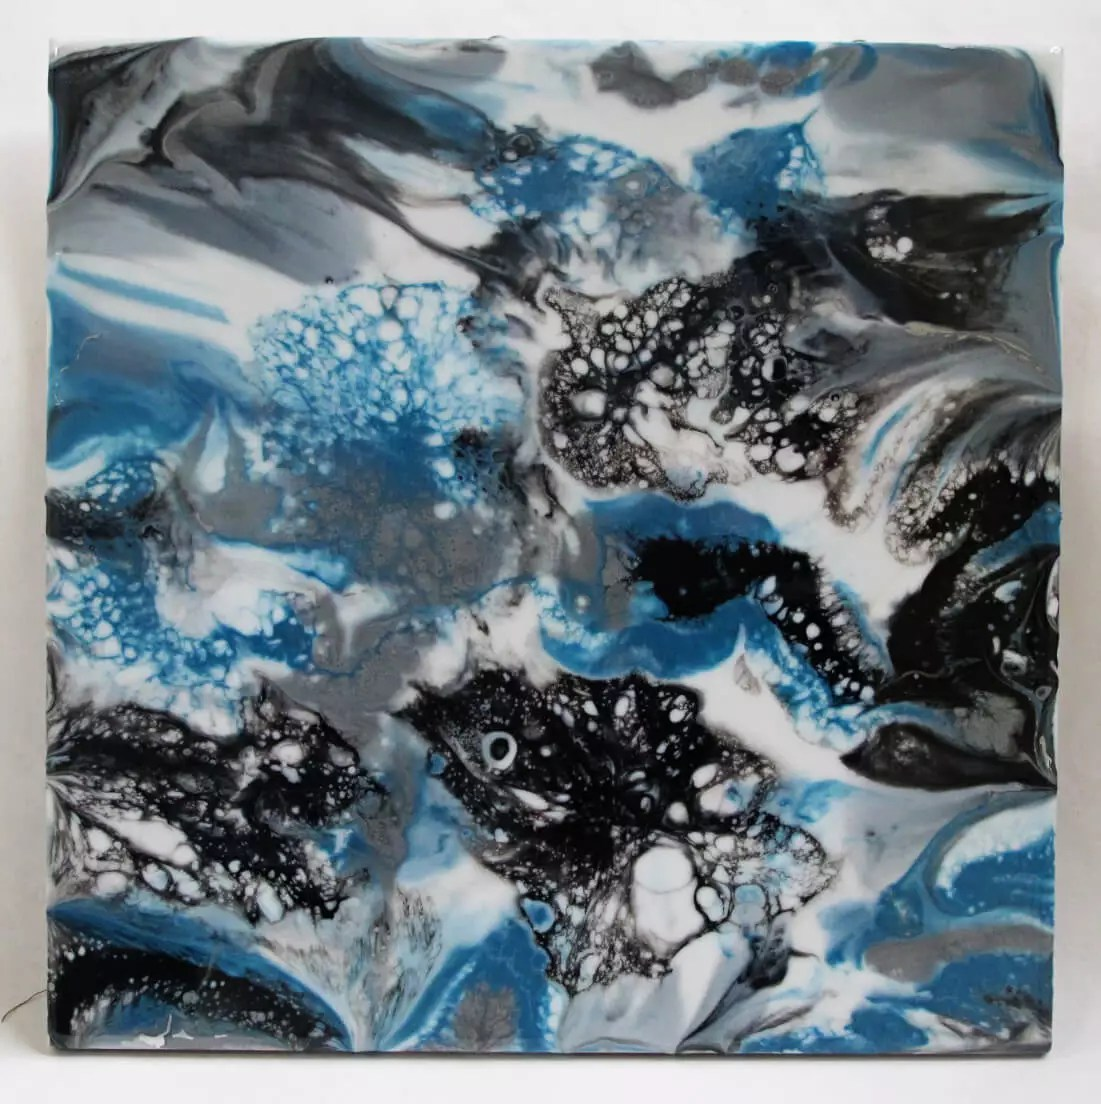 resin painting direct pour with cells black blue white silver